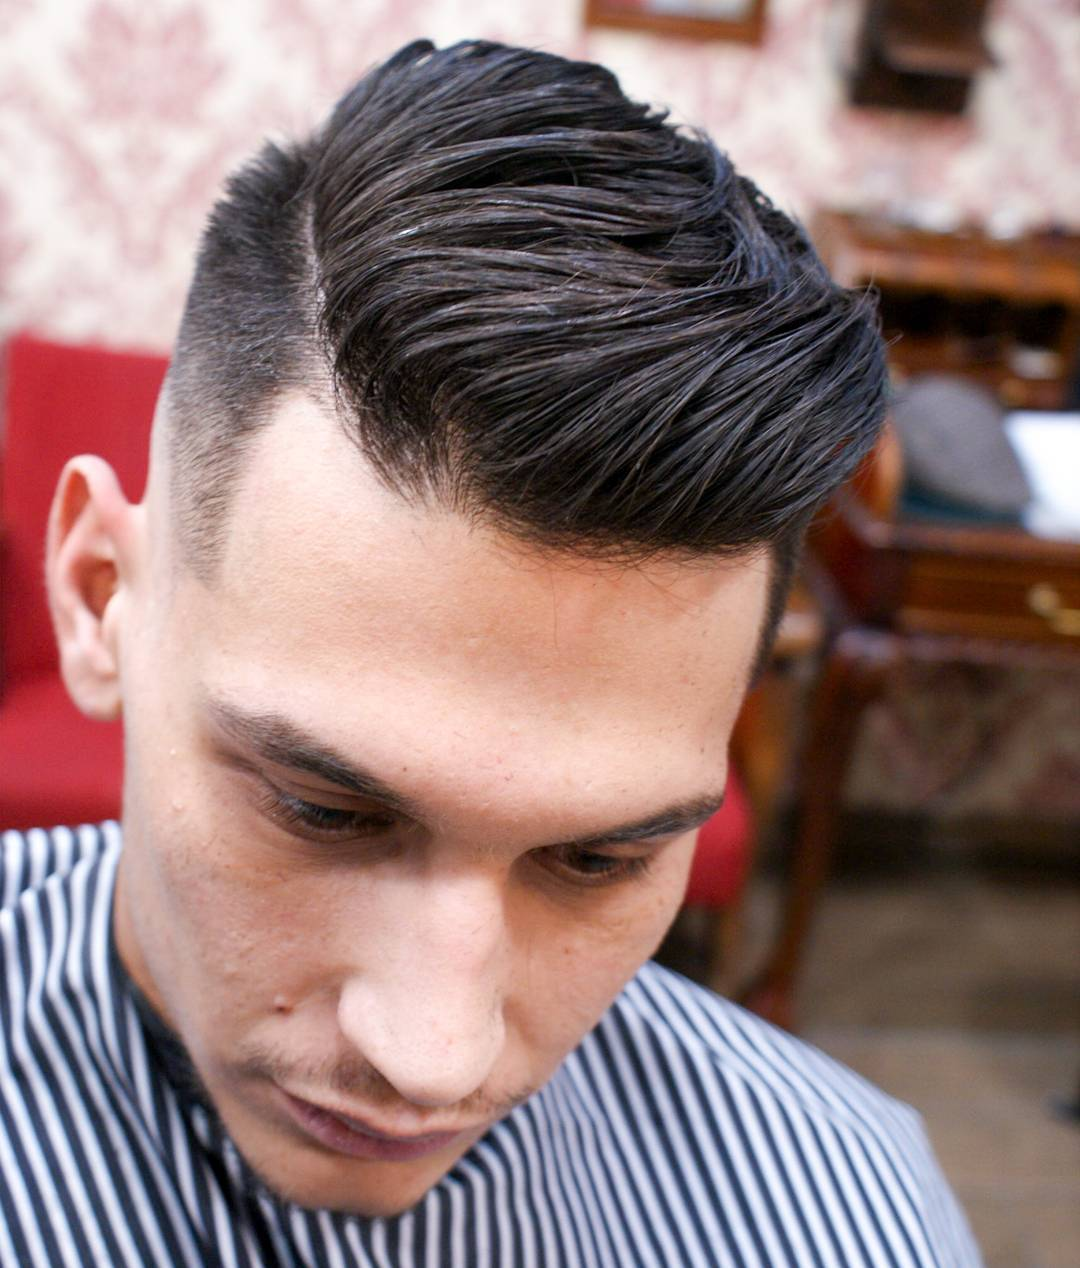 20 Cool Haircuts for Men with Thick Hair (Short + Medium)